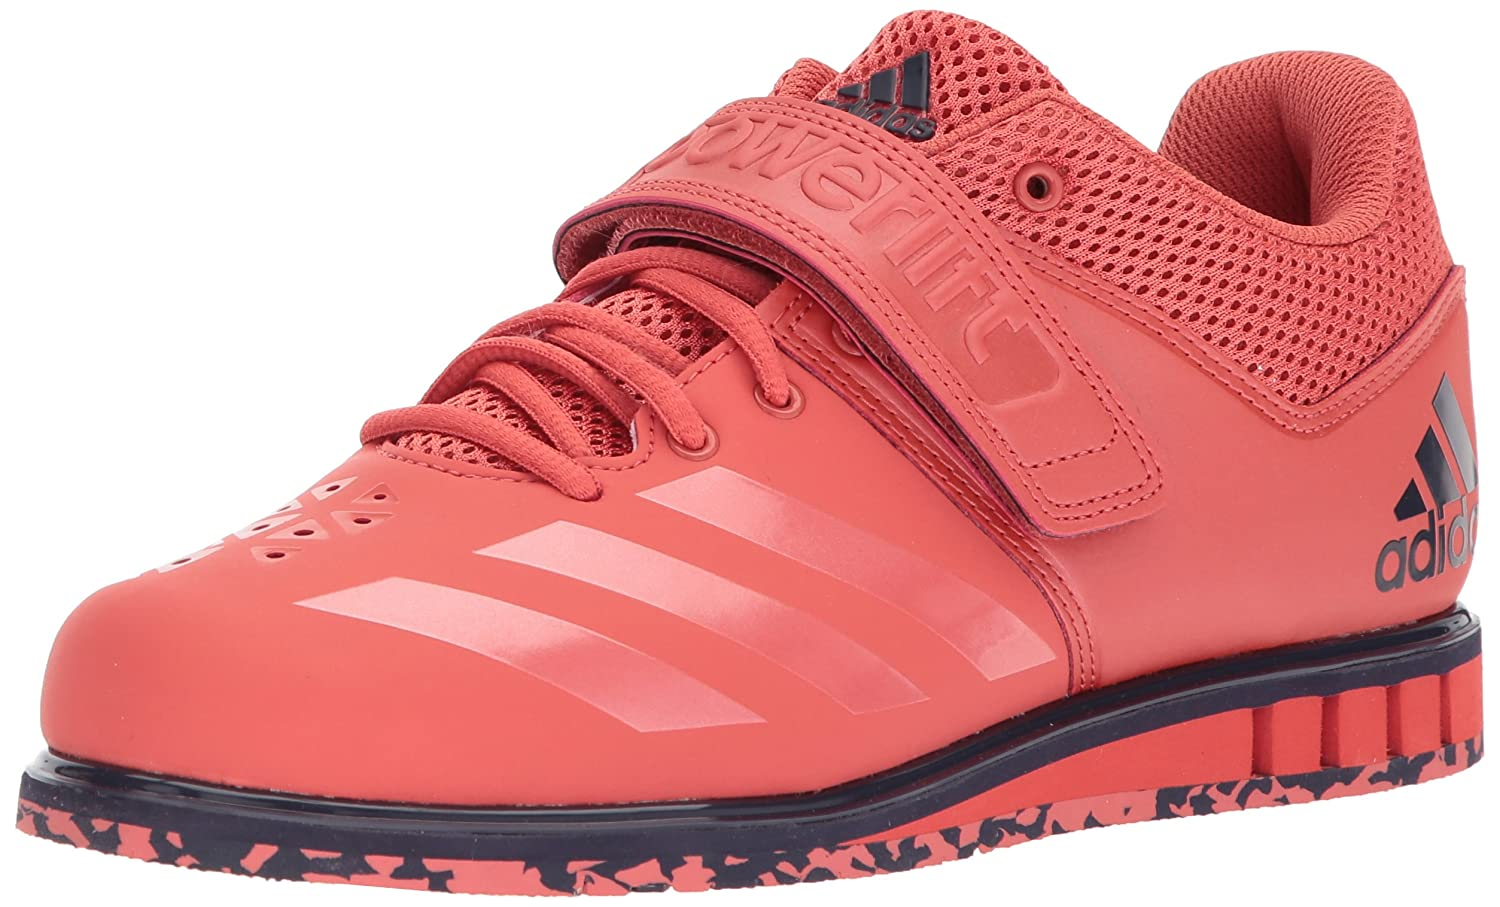 Trace Scarlet Trace Scarlet Noble Ink adidas Powerlift.3.1 shoes Men's Weightlifting